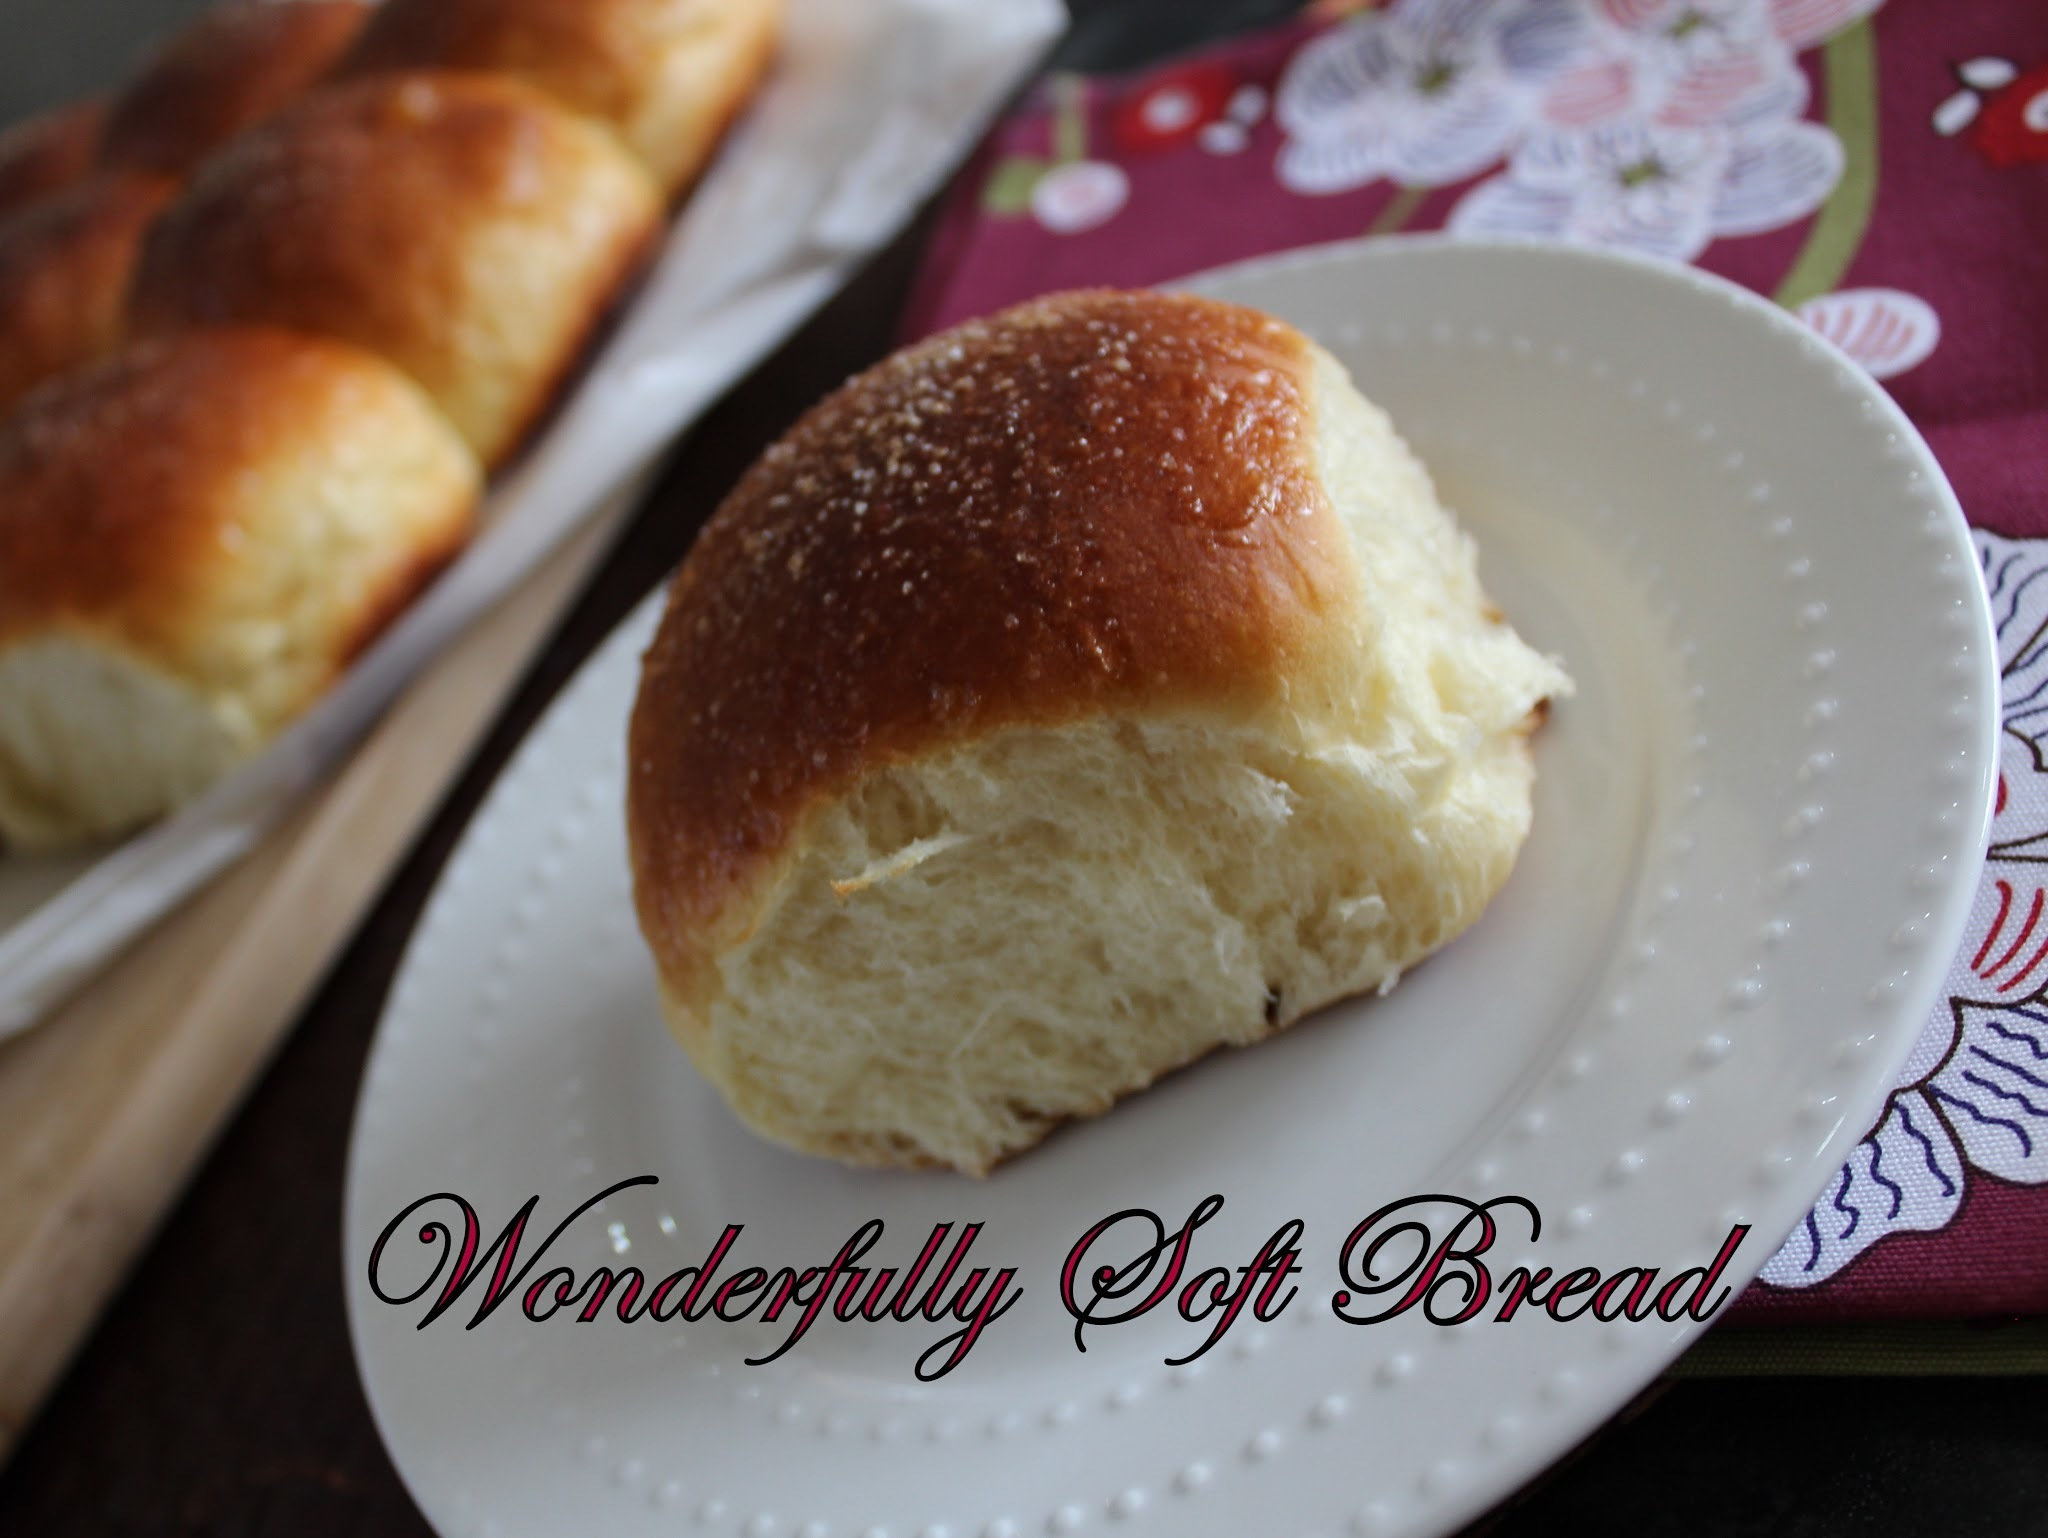 Wonderfully Soft Bread